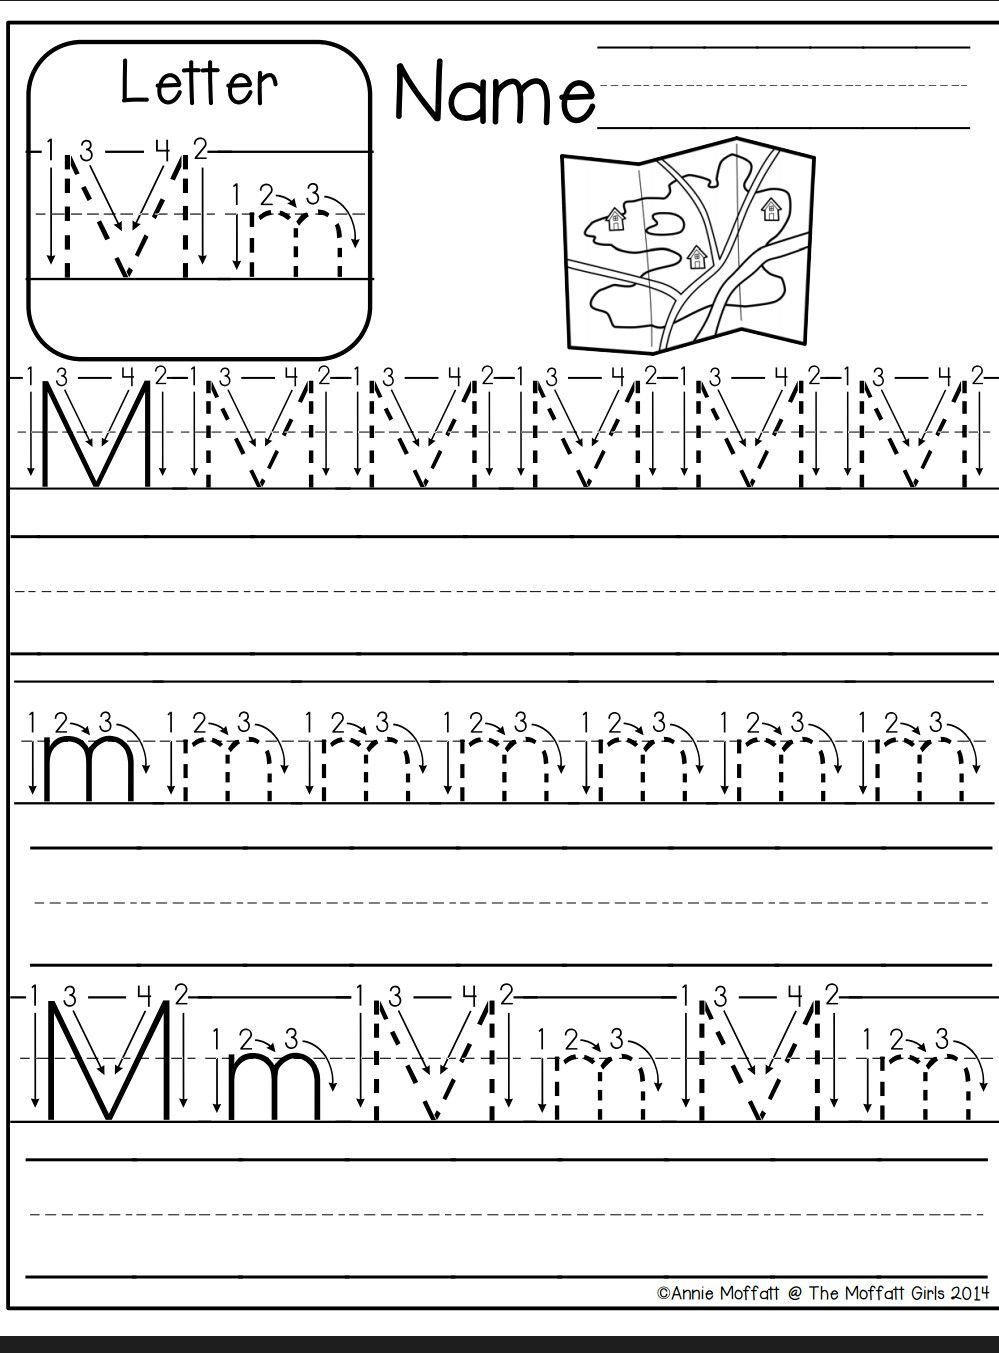 Letter M Worksheet | Kindergarten Abc Worksheets, Alphabet inside Letter M Tracing Preschool